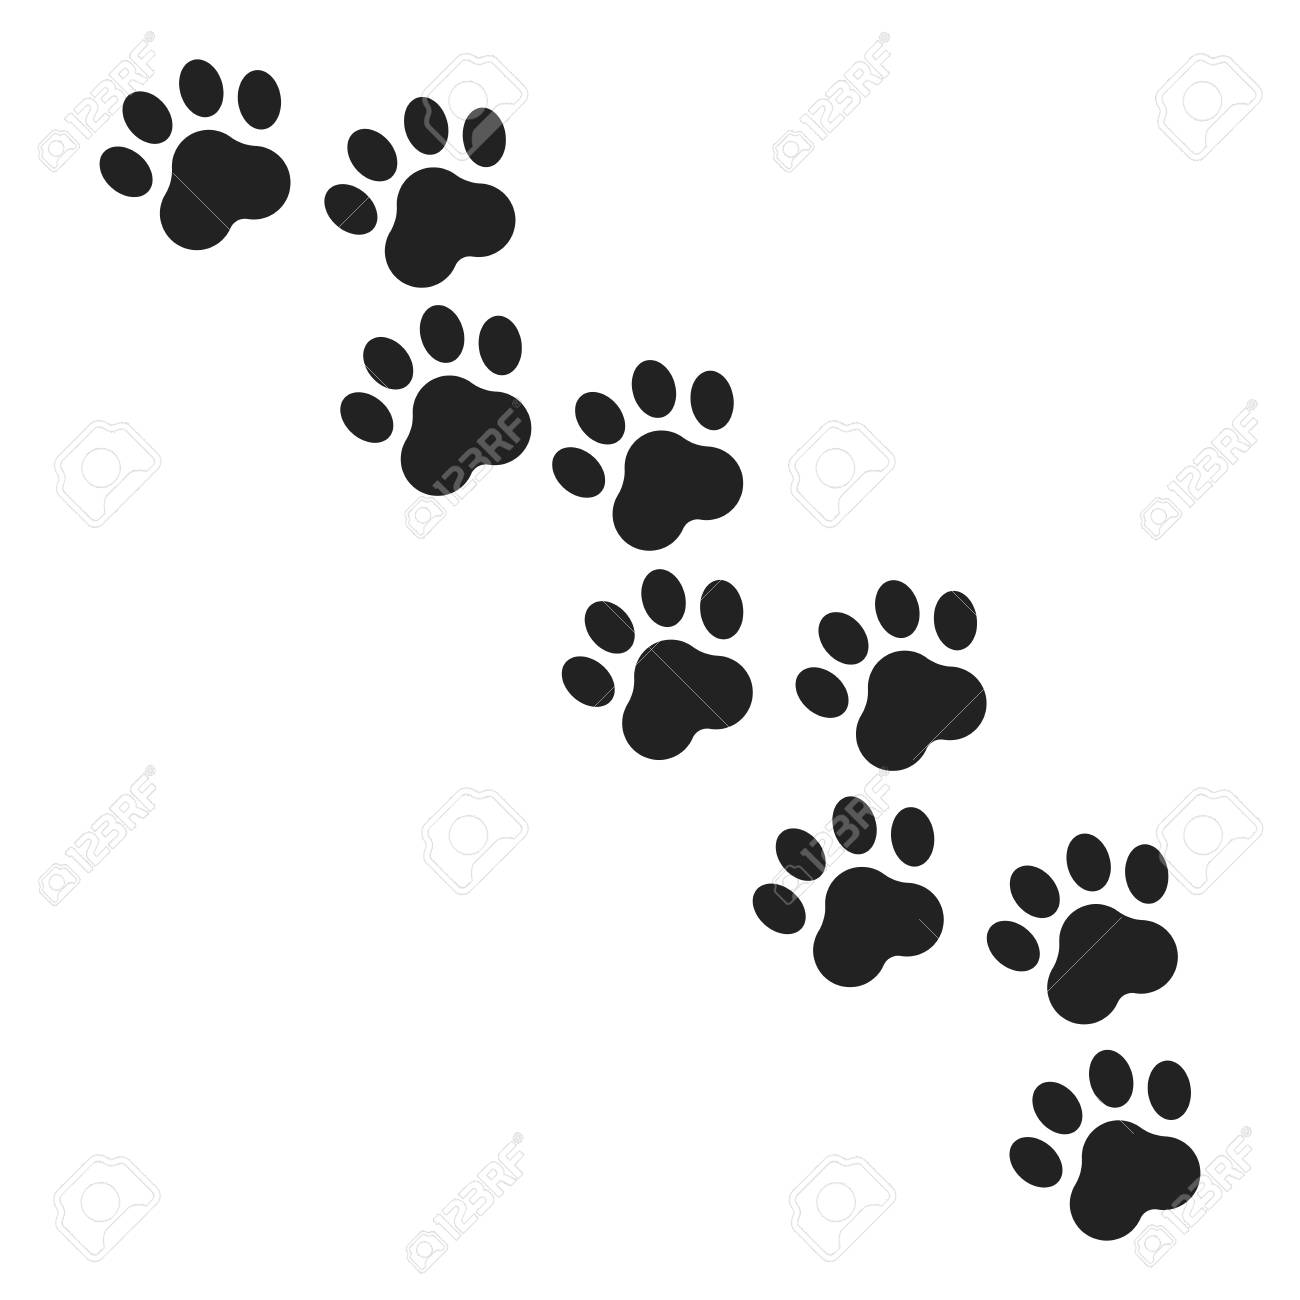 paw print vector icon dog or kitten at paw print illustration rh 123rf com dog paw print tattoo vector dog paw print vector free download